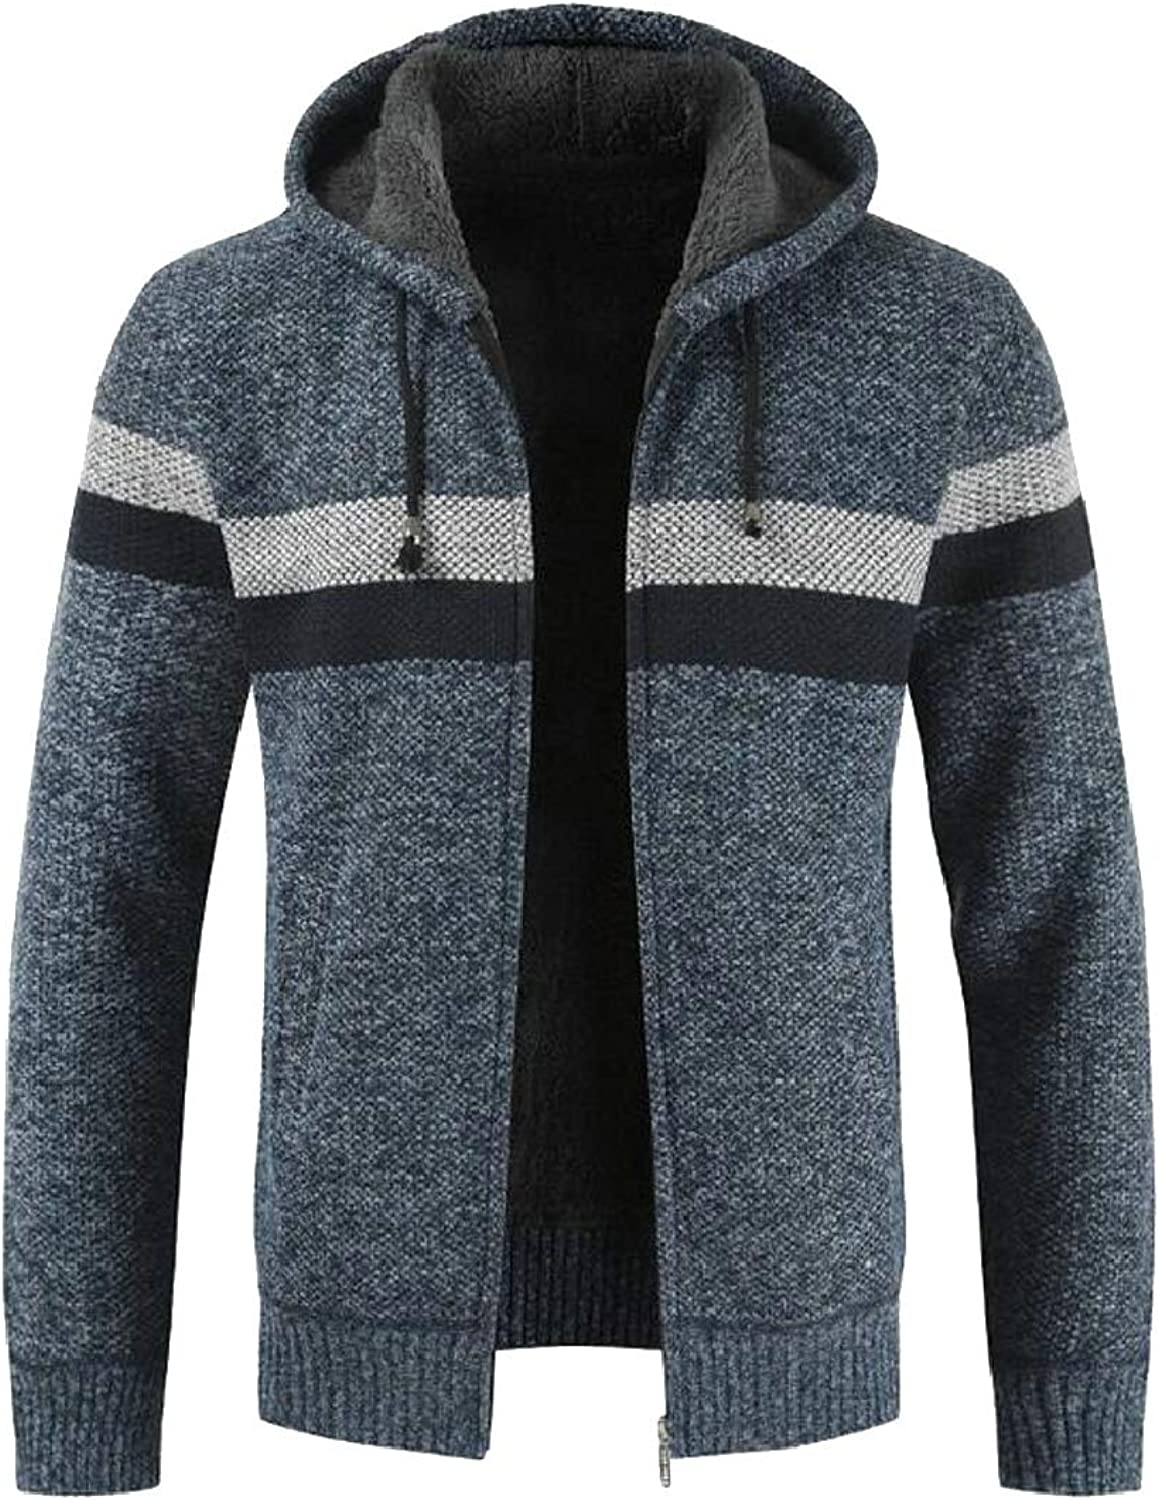 QD-CACA Mens Warm Long Sleeve Fleece Lined Hooded Cardigan Sweater